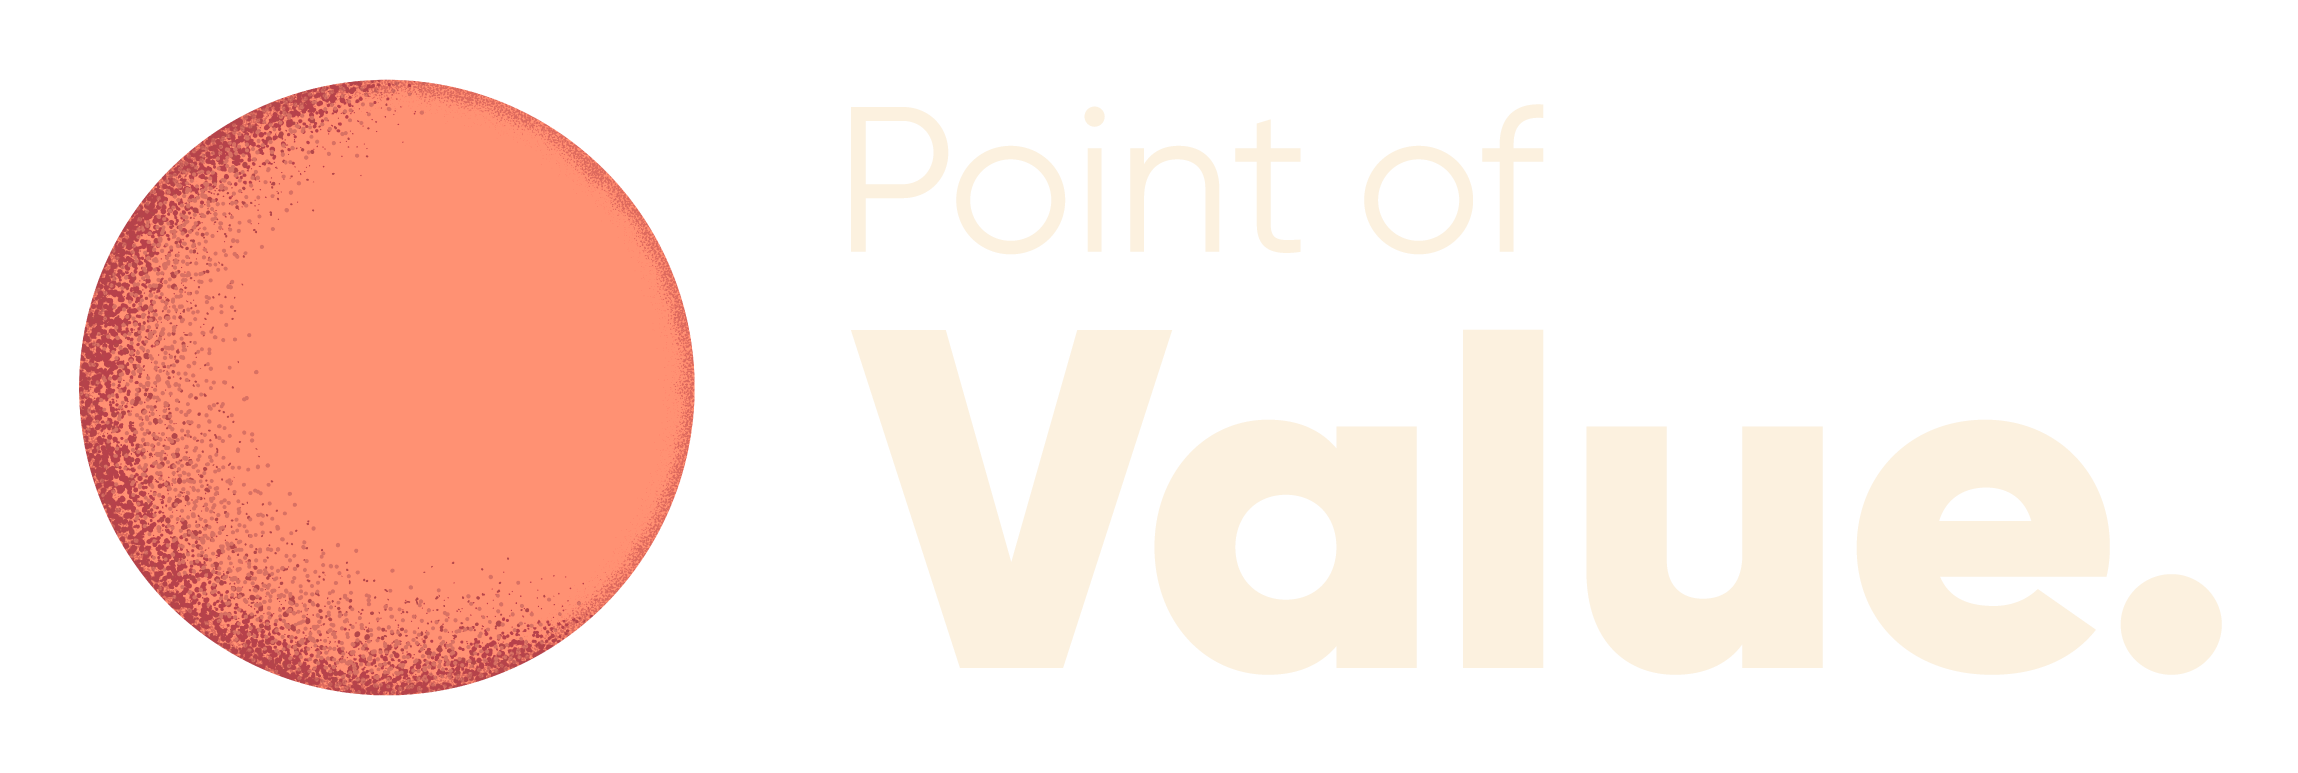 Point of Value logo.